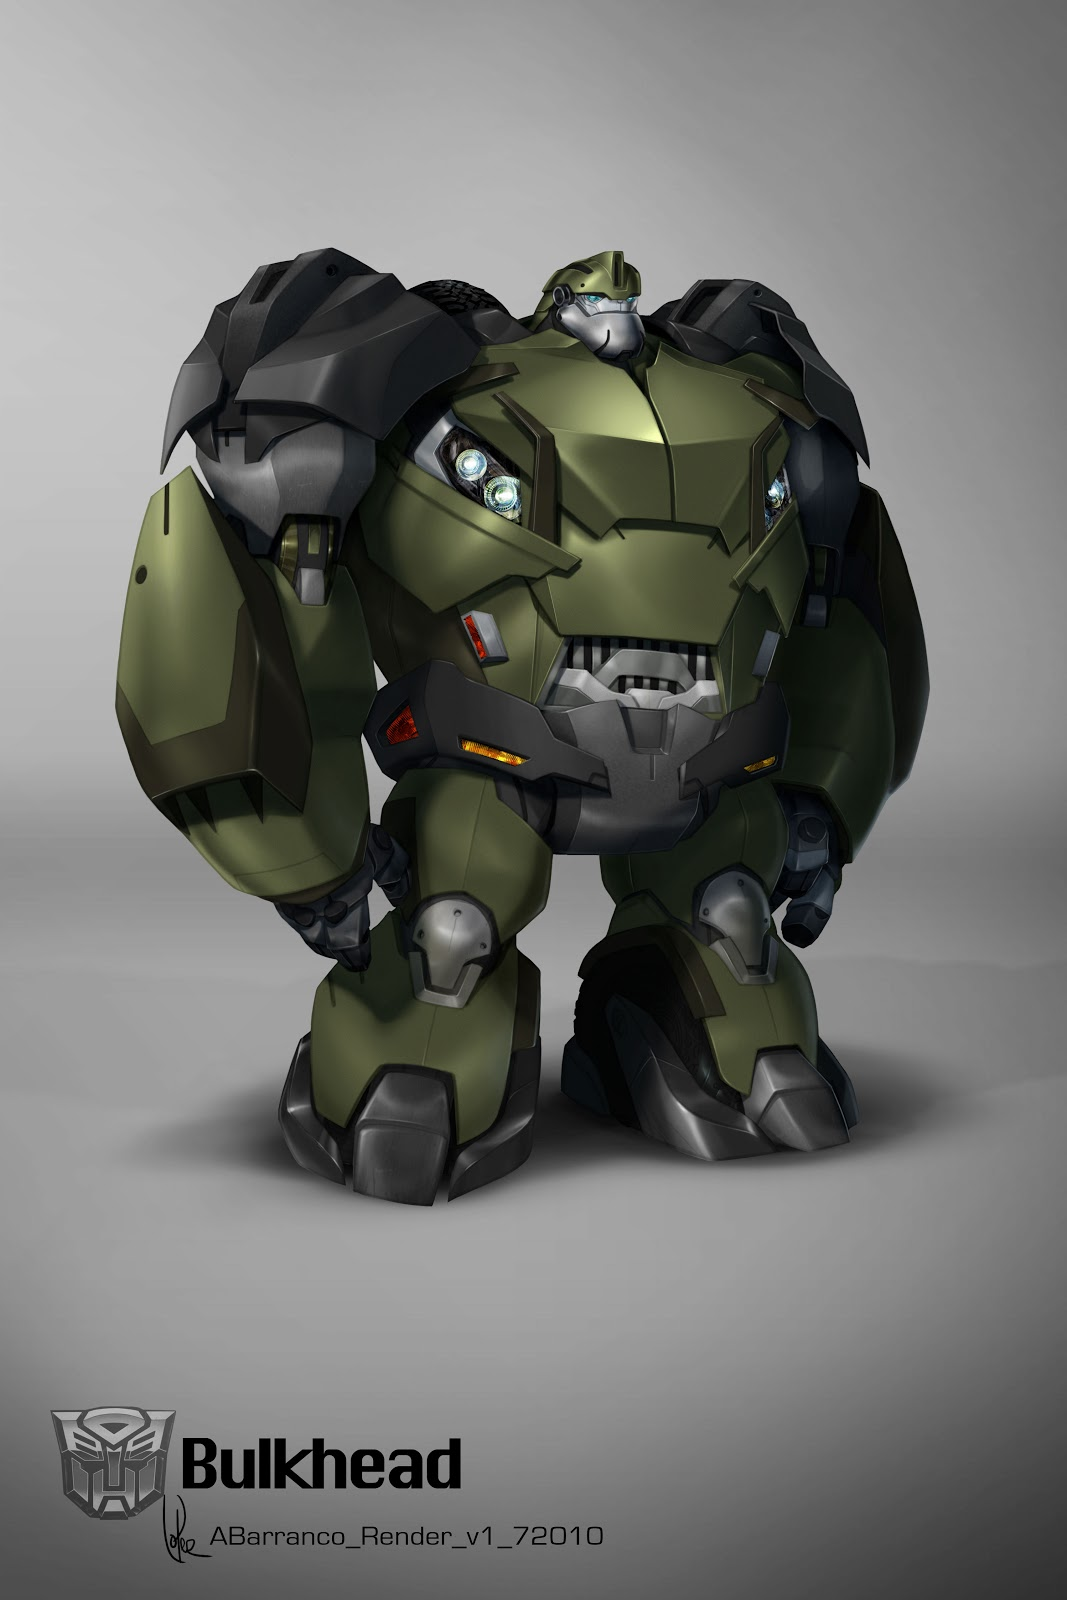 Augusto Barranco: Color and texture designs for the characters in Transformers Prime. All new